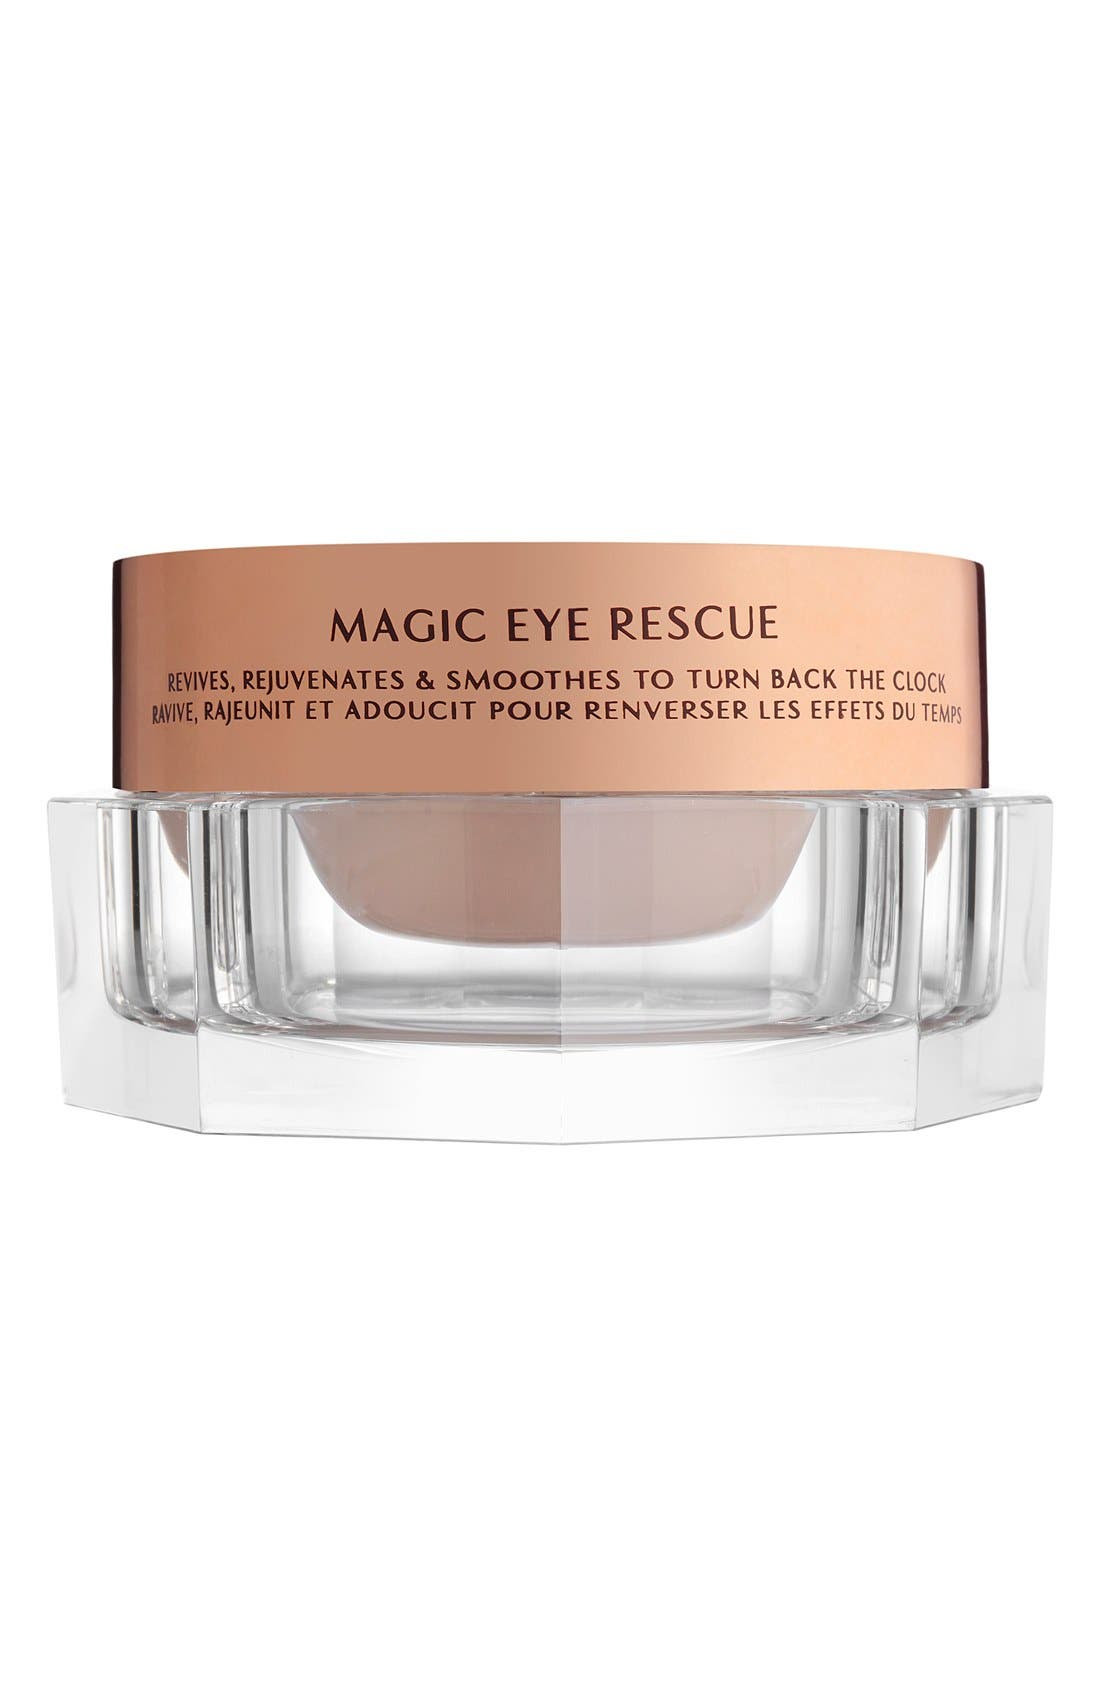 Charlotte Tilbury 'Magic Eye Rescue' Rejuvenates, Smoothes & Repairs